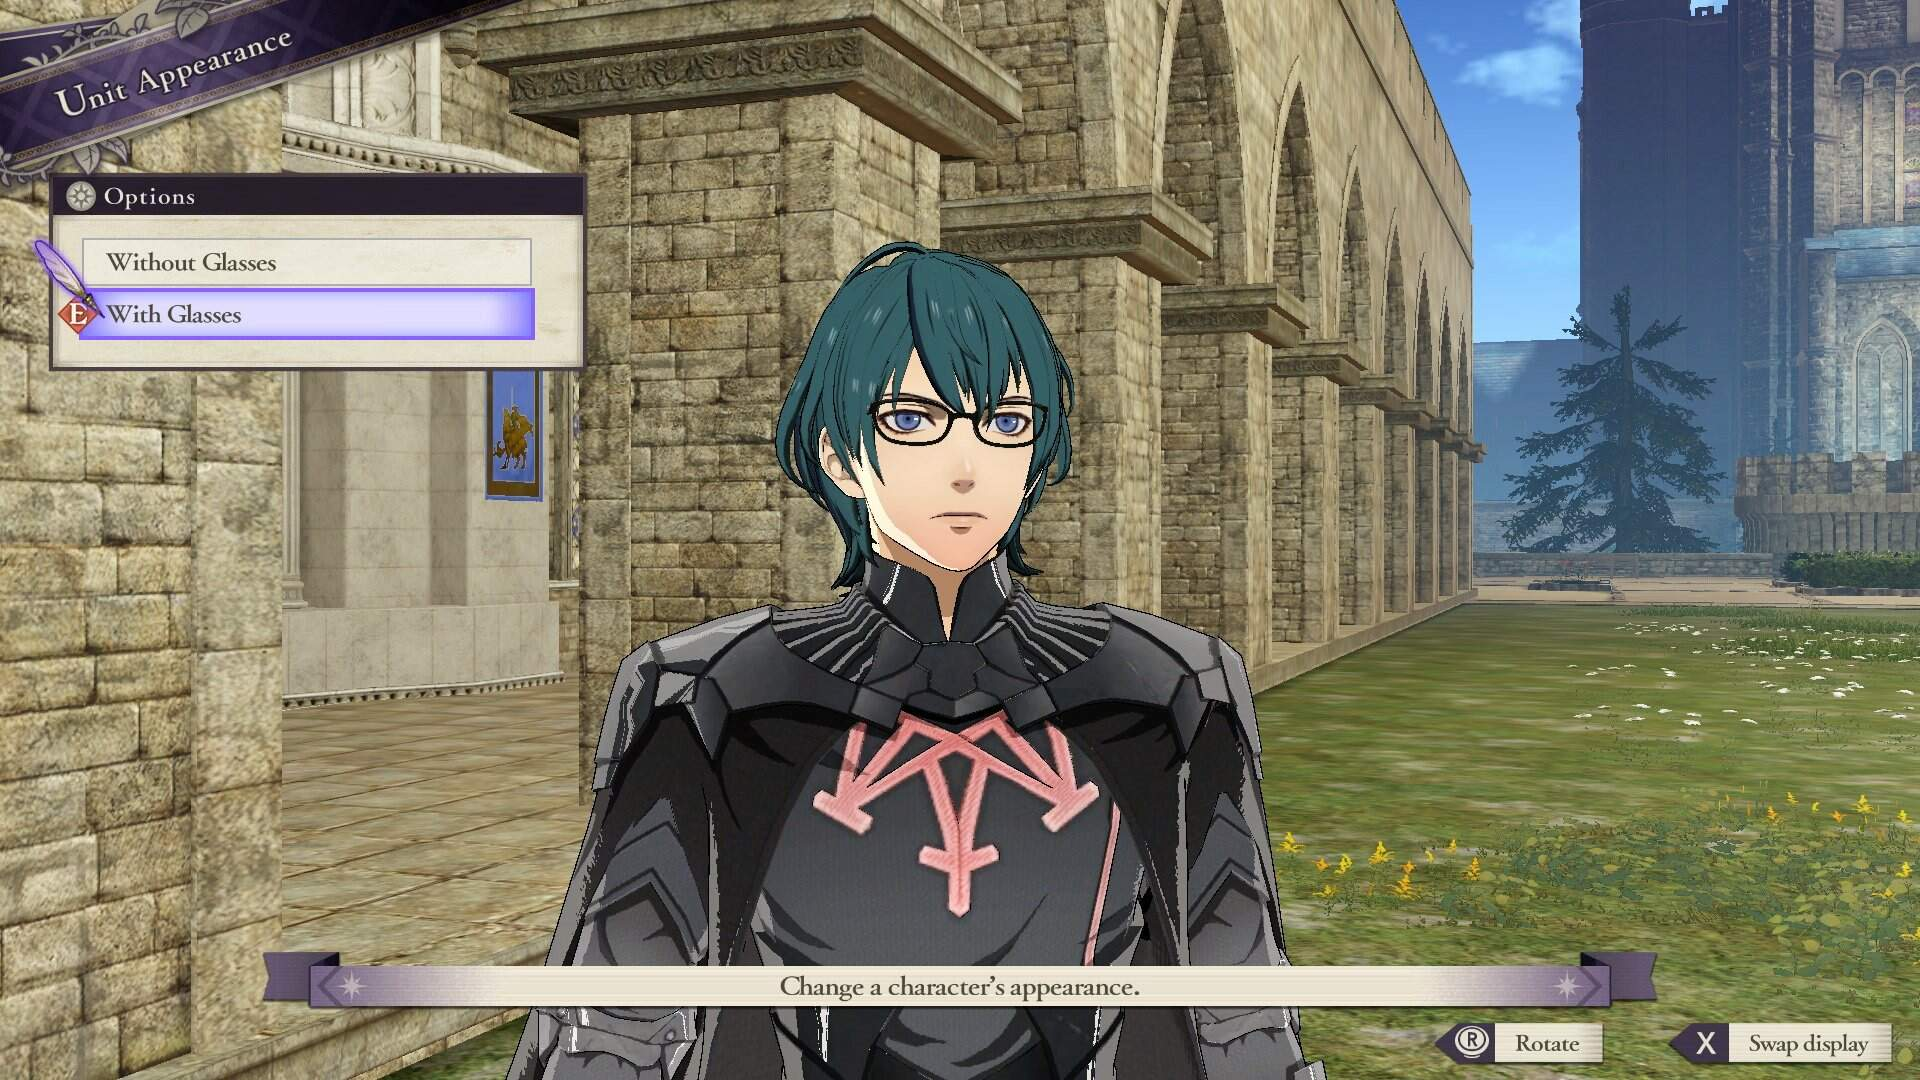 Fire Emblem: Three Houses Expansion Pass DLC Includes Stat Boosters, New Battles, and Stylish Glasses for Byleth